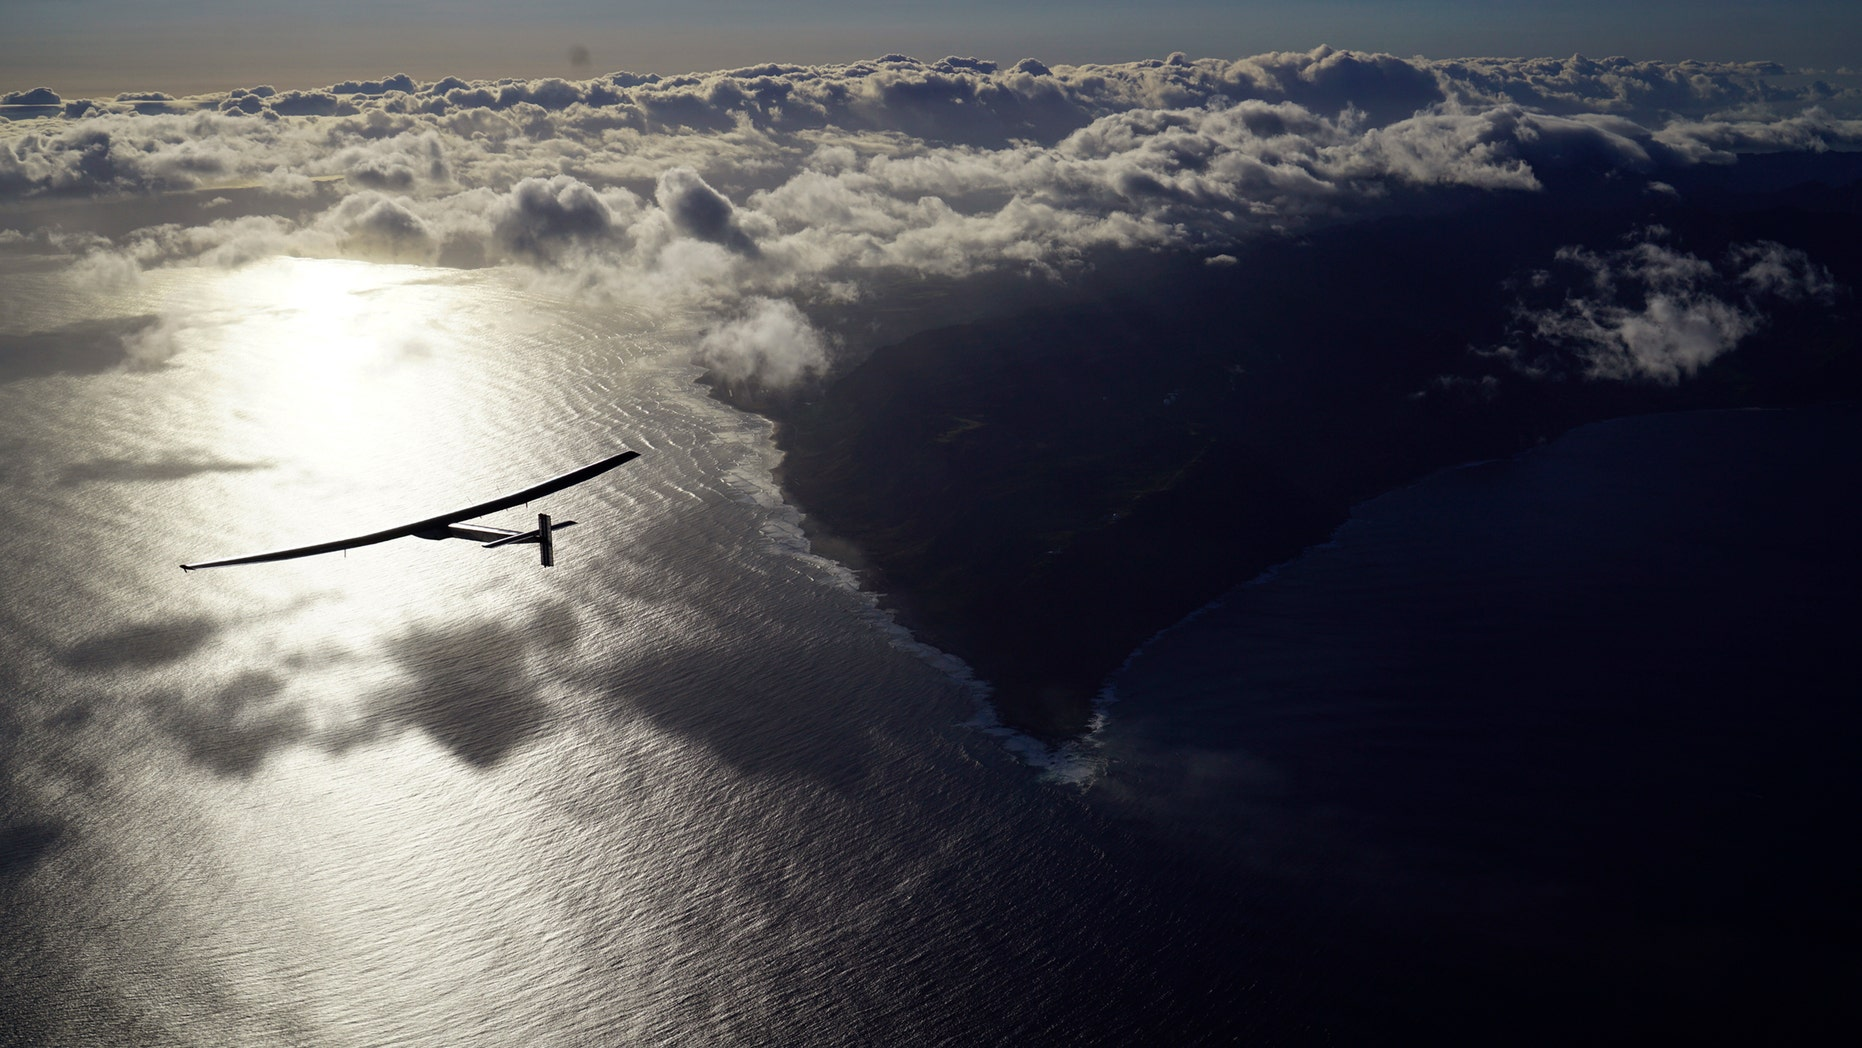 In this photo provided by Solar Impulse, the solar-powered plane, Solar Impulse 2, piloted by Bertrand Piccard, is seen in the air Thursday, April 21, 2016, after successfully taking off from Kalaeloa Airport, Hawaii, for a non-stop three day flight expected to cover about 2,336 miles to Moffett Airfield, Calif. (Jean Revillard/Solar Impulse via AP)